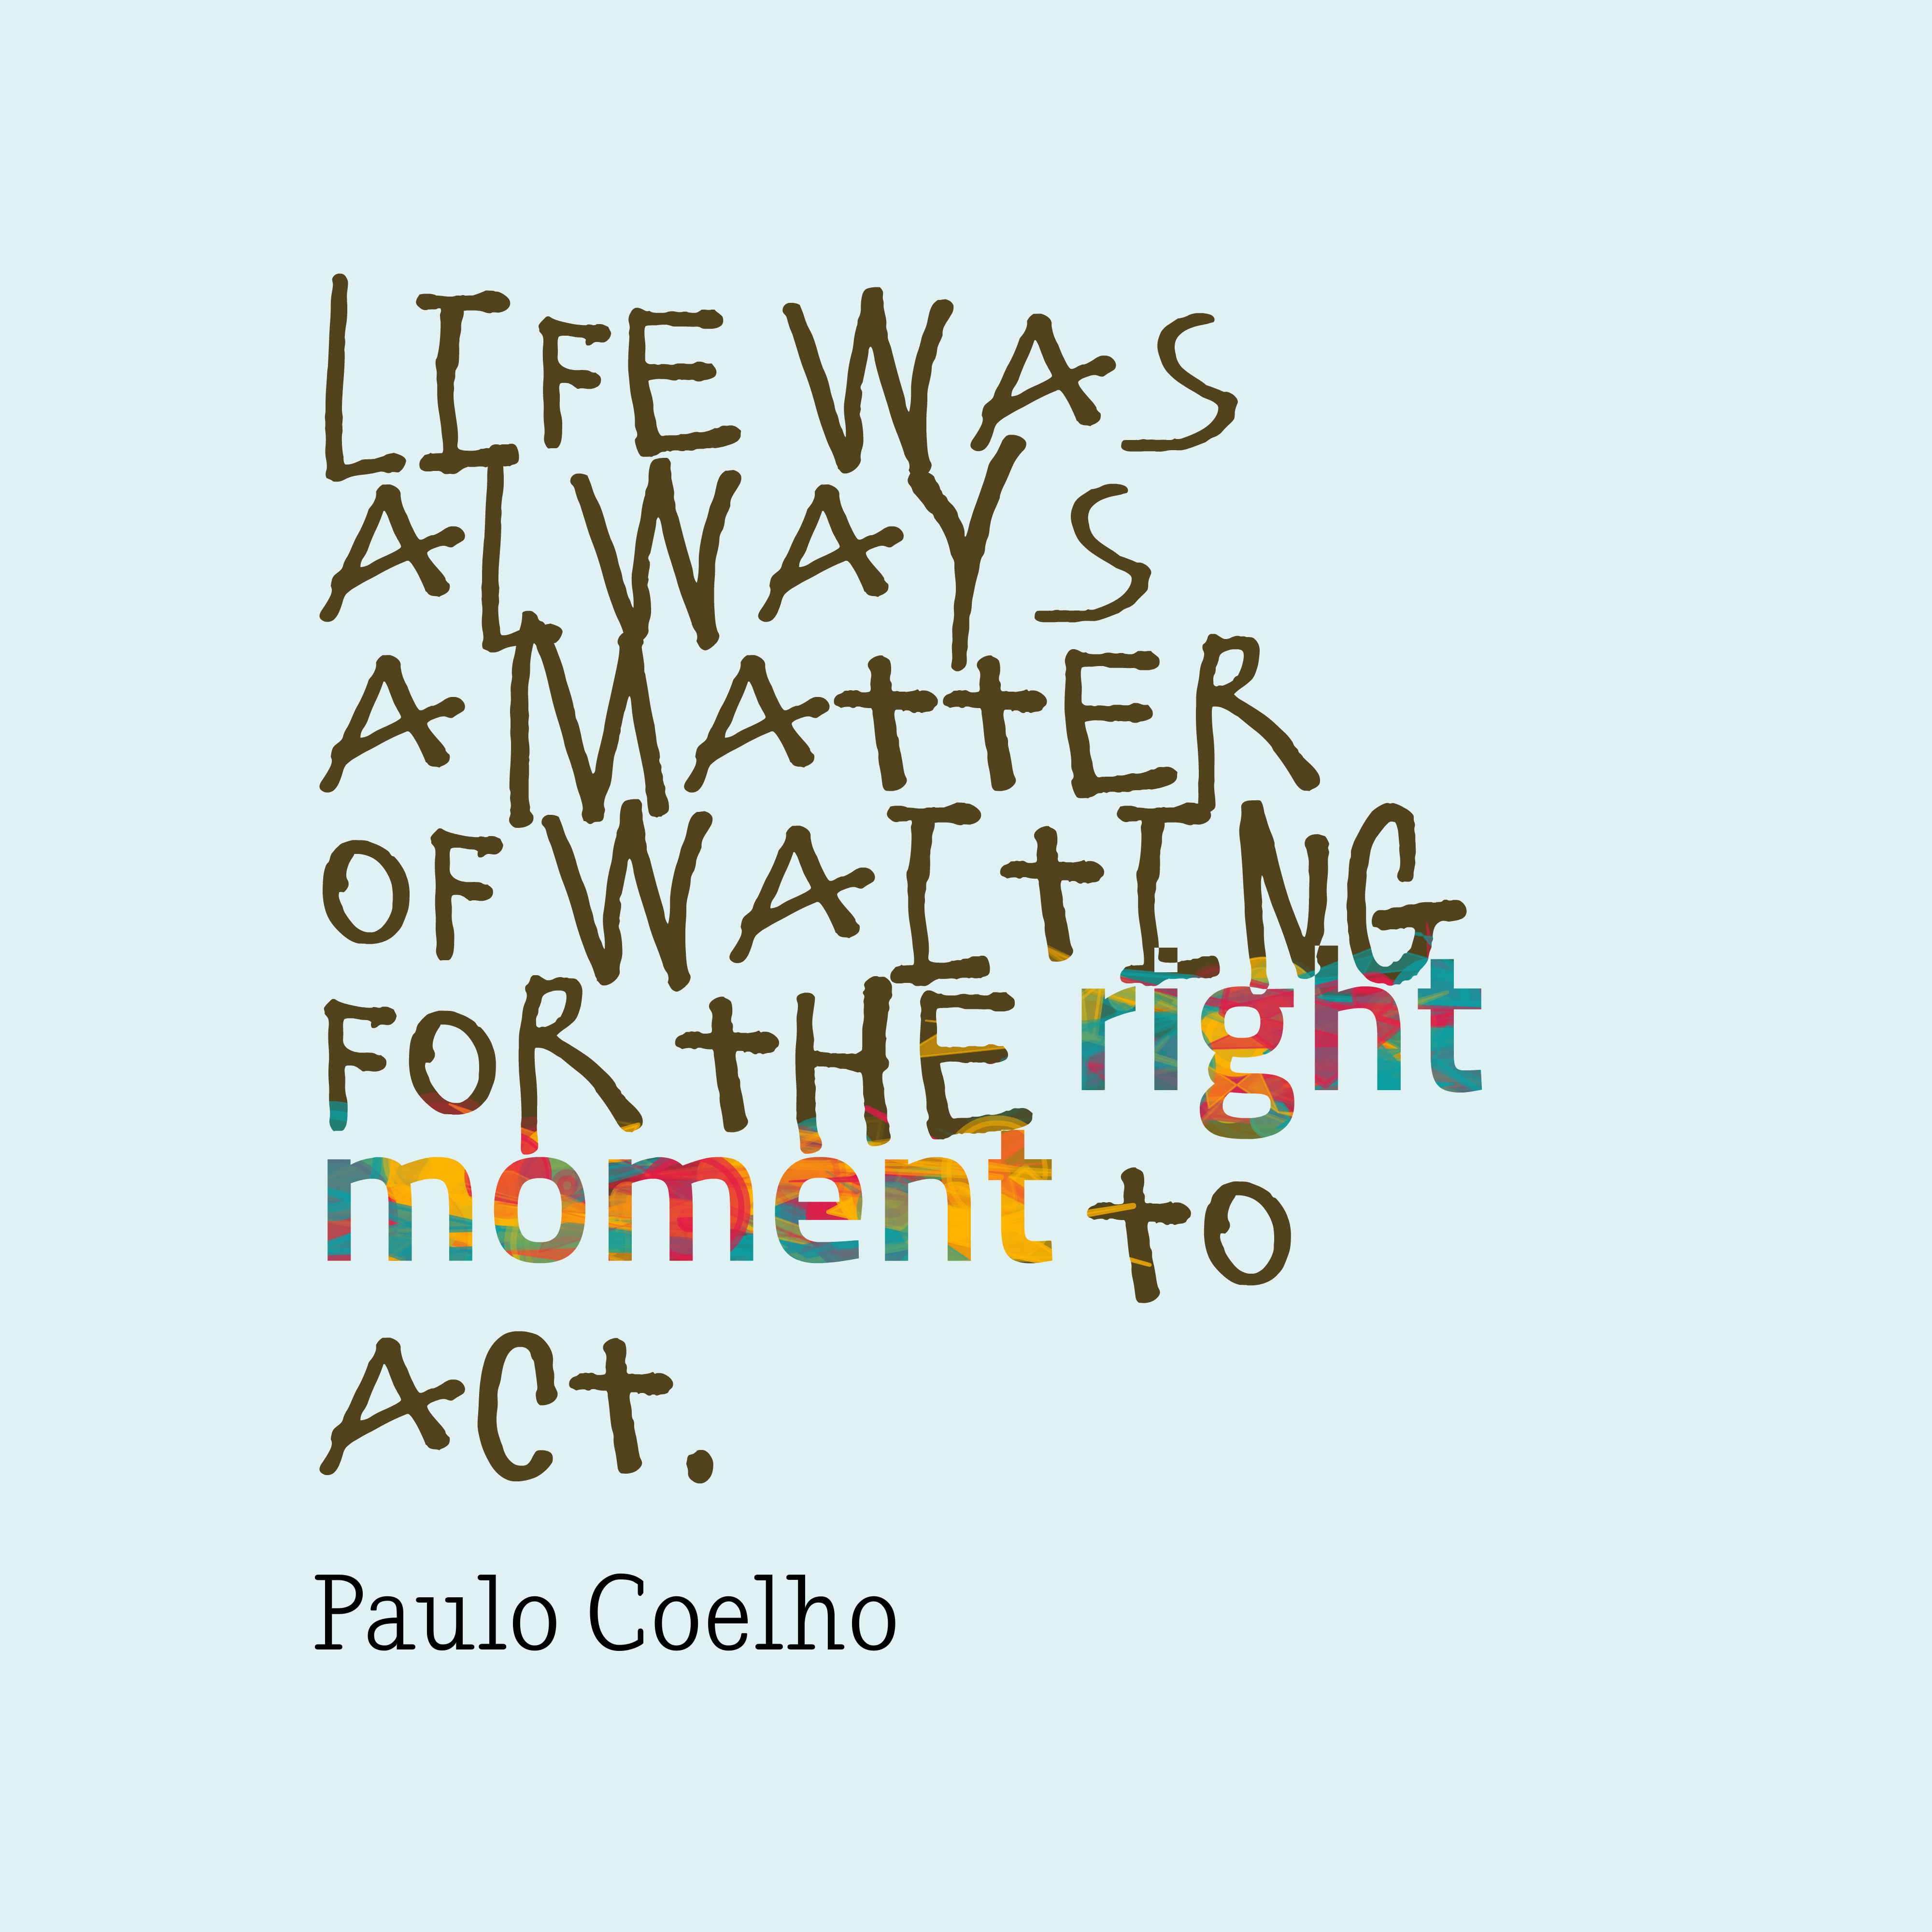 paulo coelho biography Paulo coelho is a bestselling author of books like 'the alchemist' and 'brida' this biography of paulo coelho provides detailed information about his childhood, life, achievements, works.